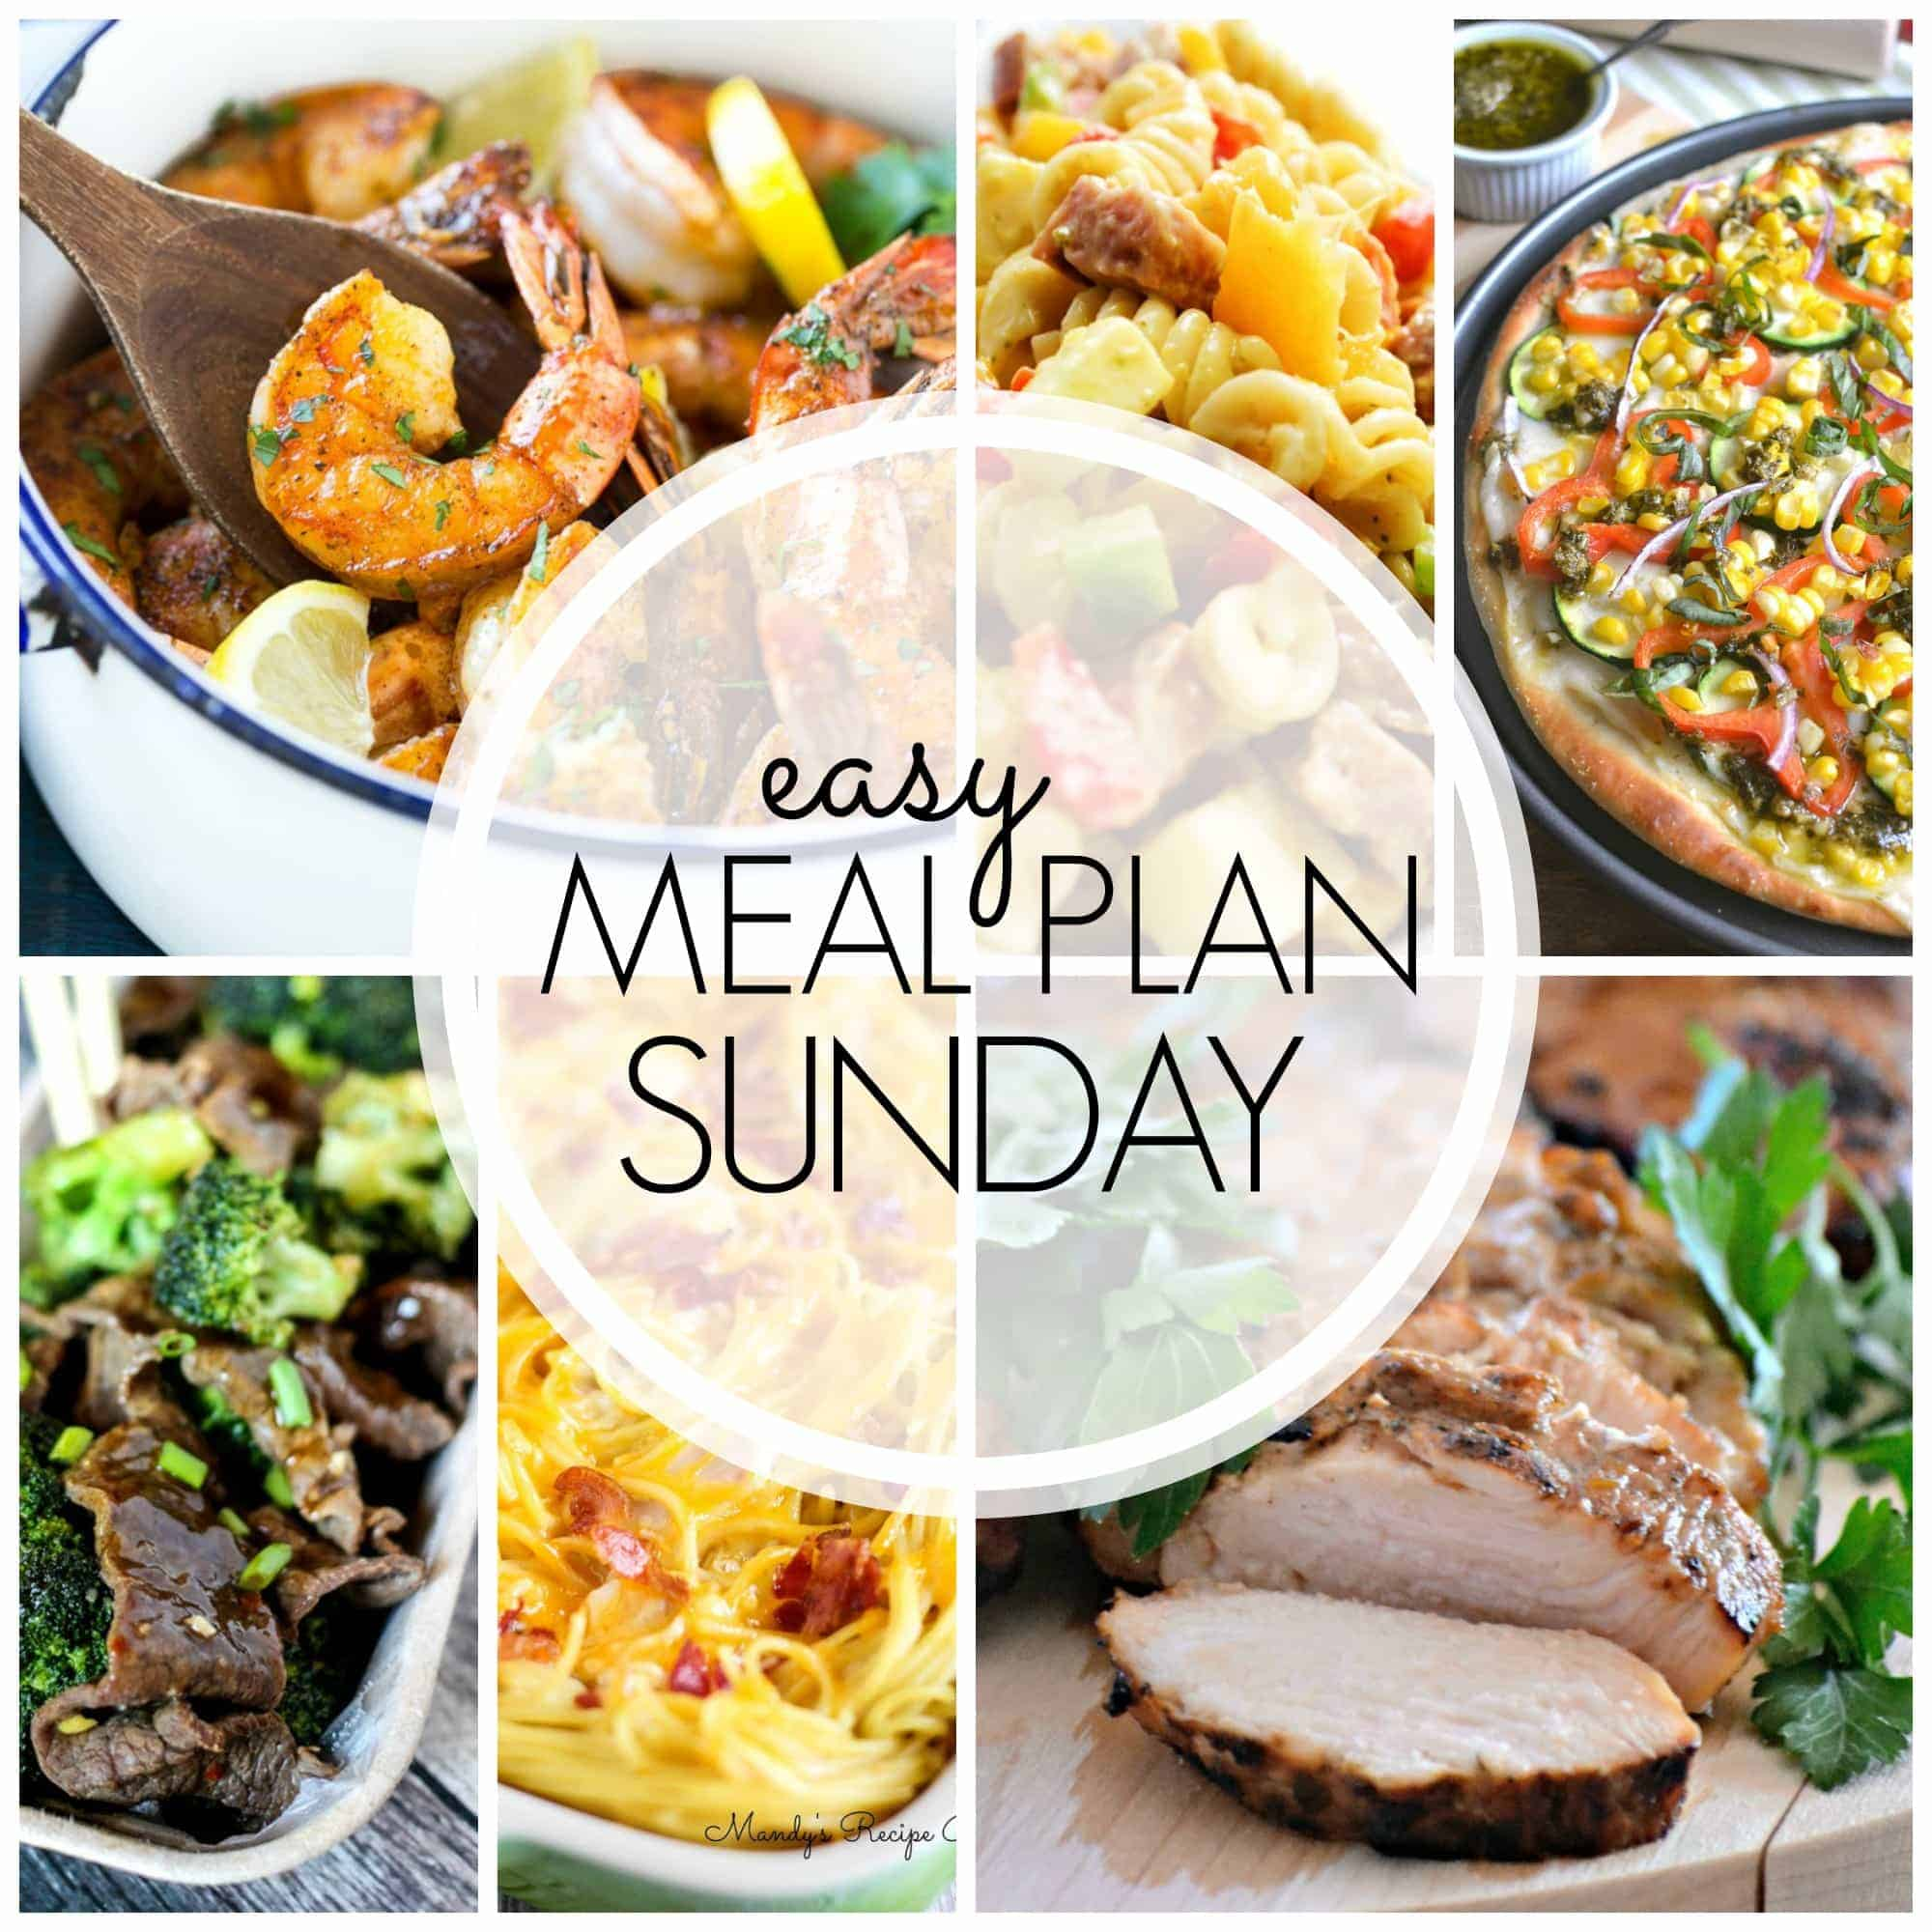 With Easy Meal Plan Sunday {Week 58} - six dinners, two desserts and a breakfast recipe will help you remove the guesswork from this week's meal planning.